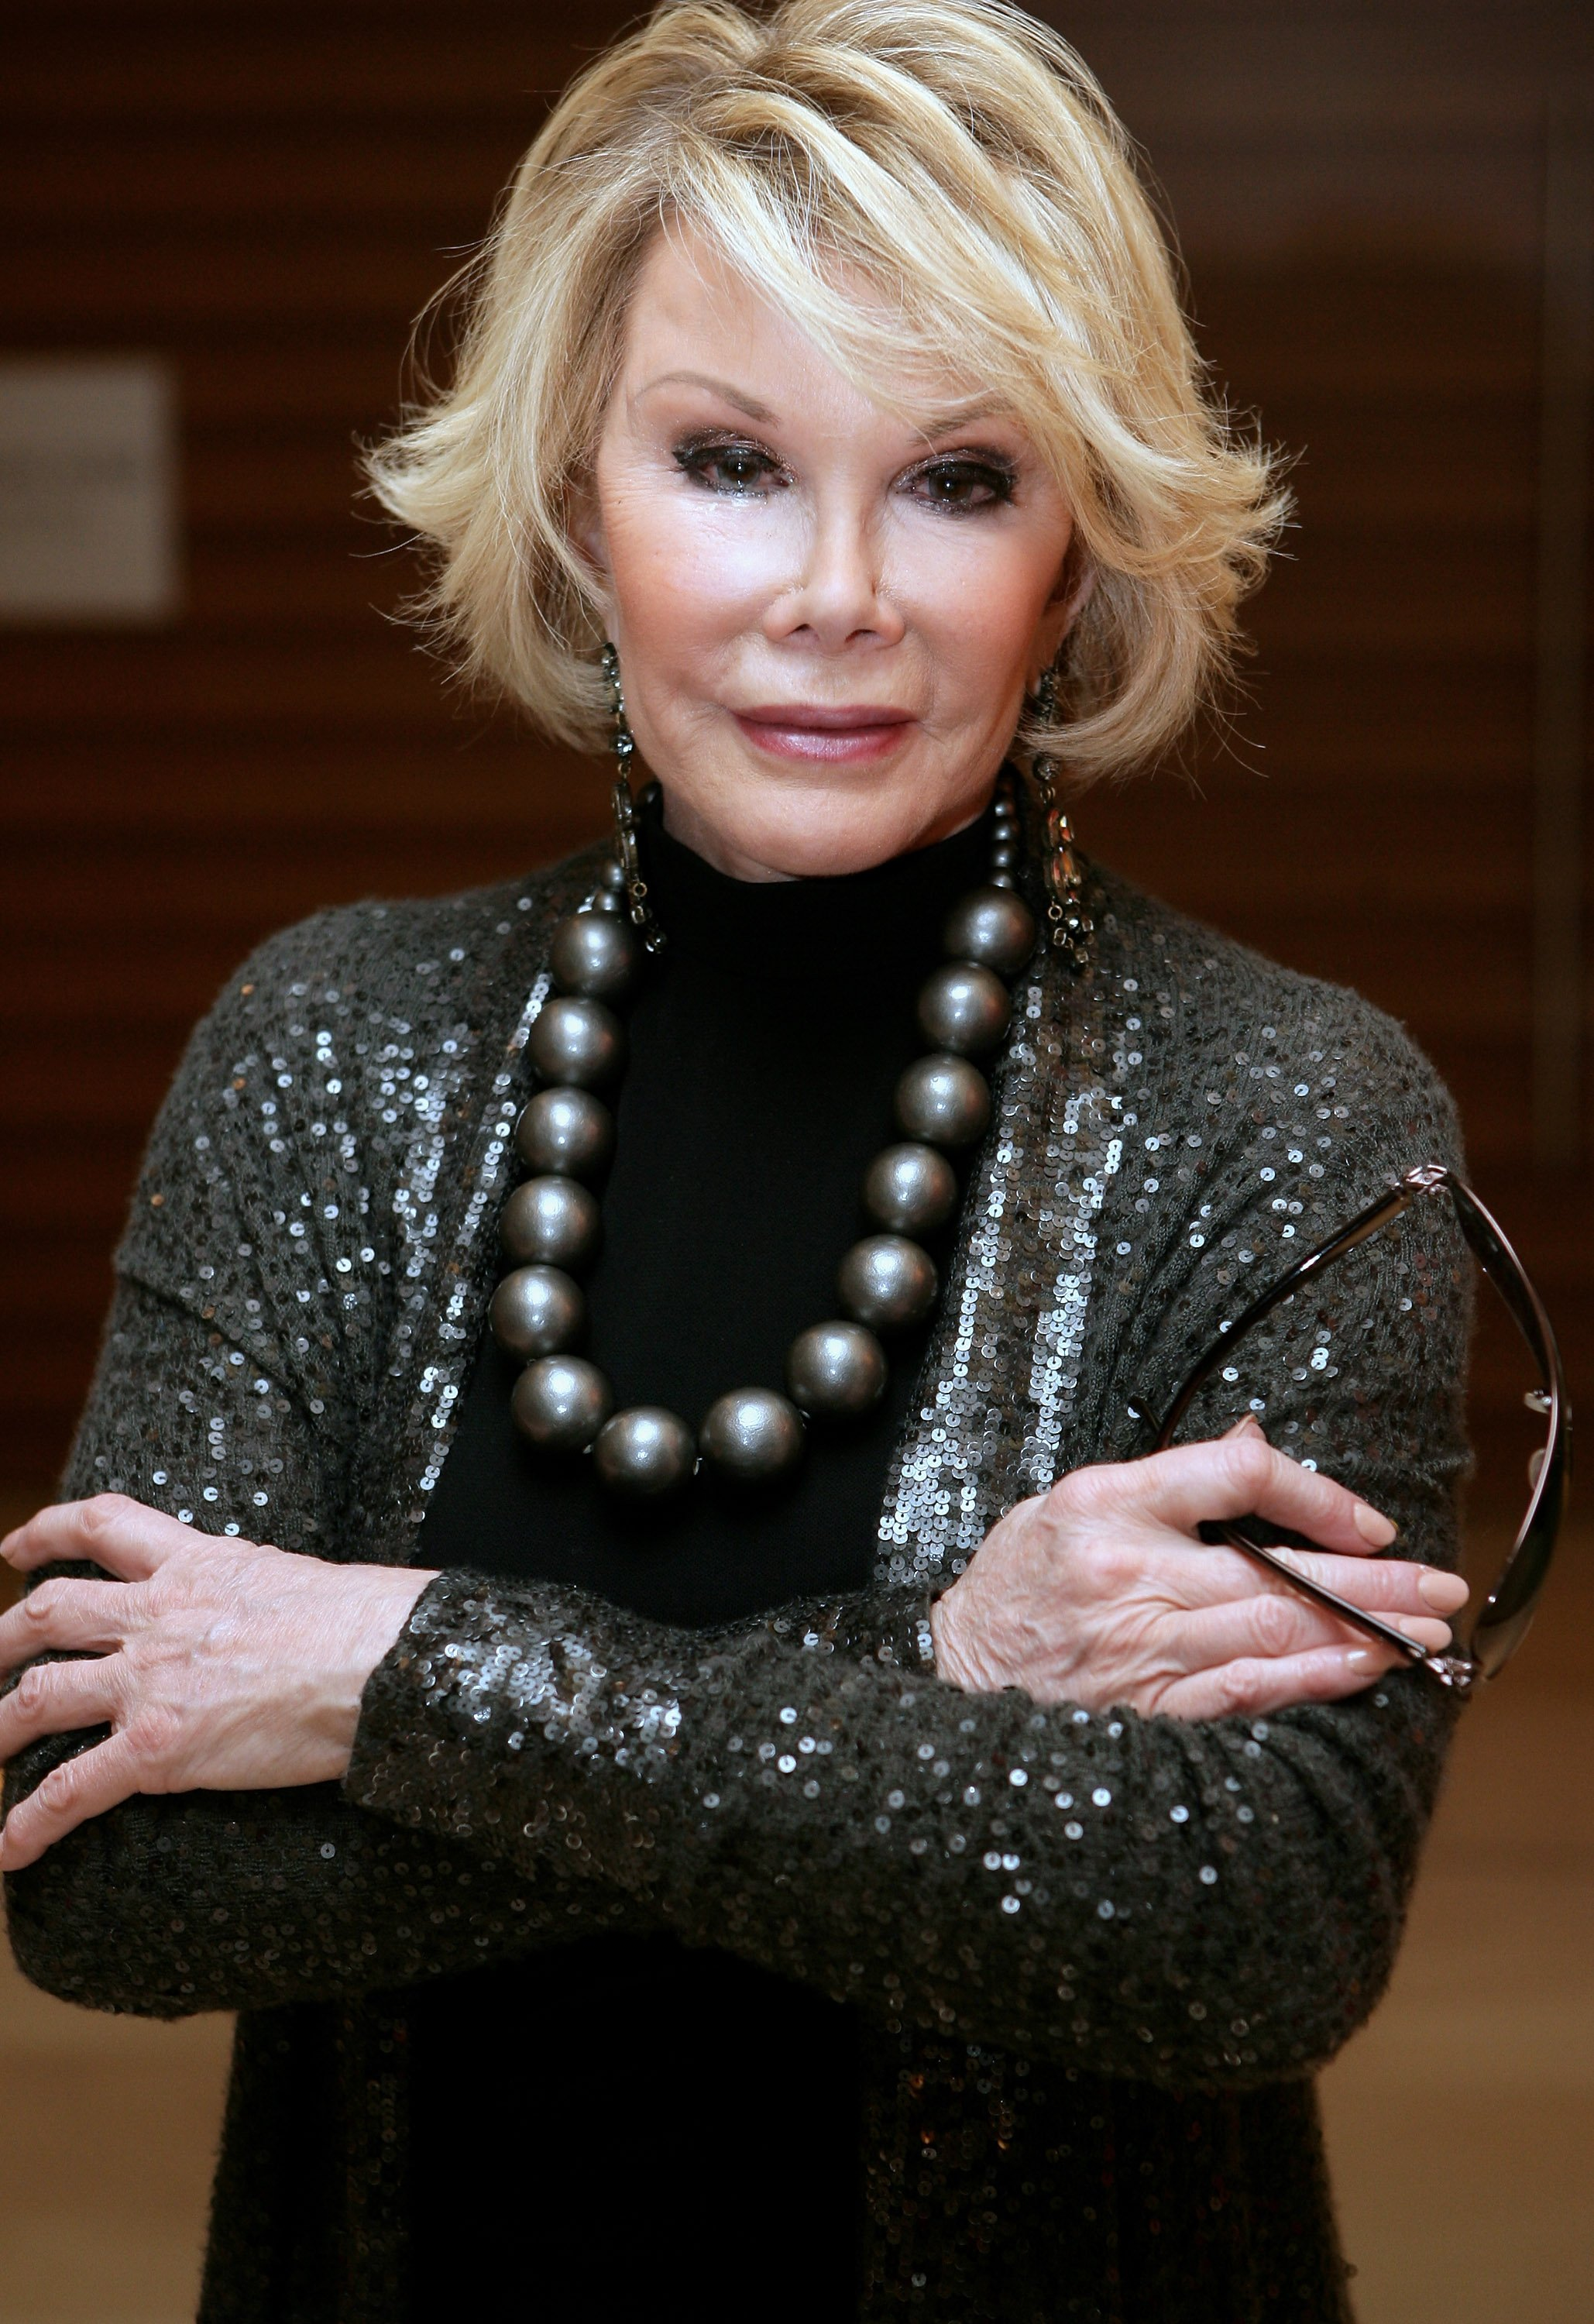 Joan Rivers  attends the 2009 Mardi Gras VIP party at the Zeta Bar of the Hilton Hotel in Sydney on March 5, 2009